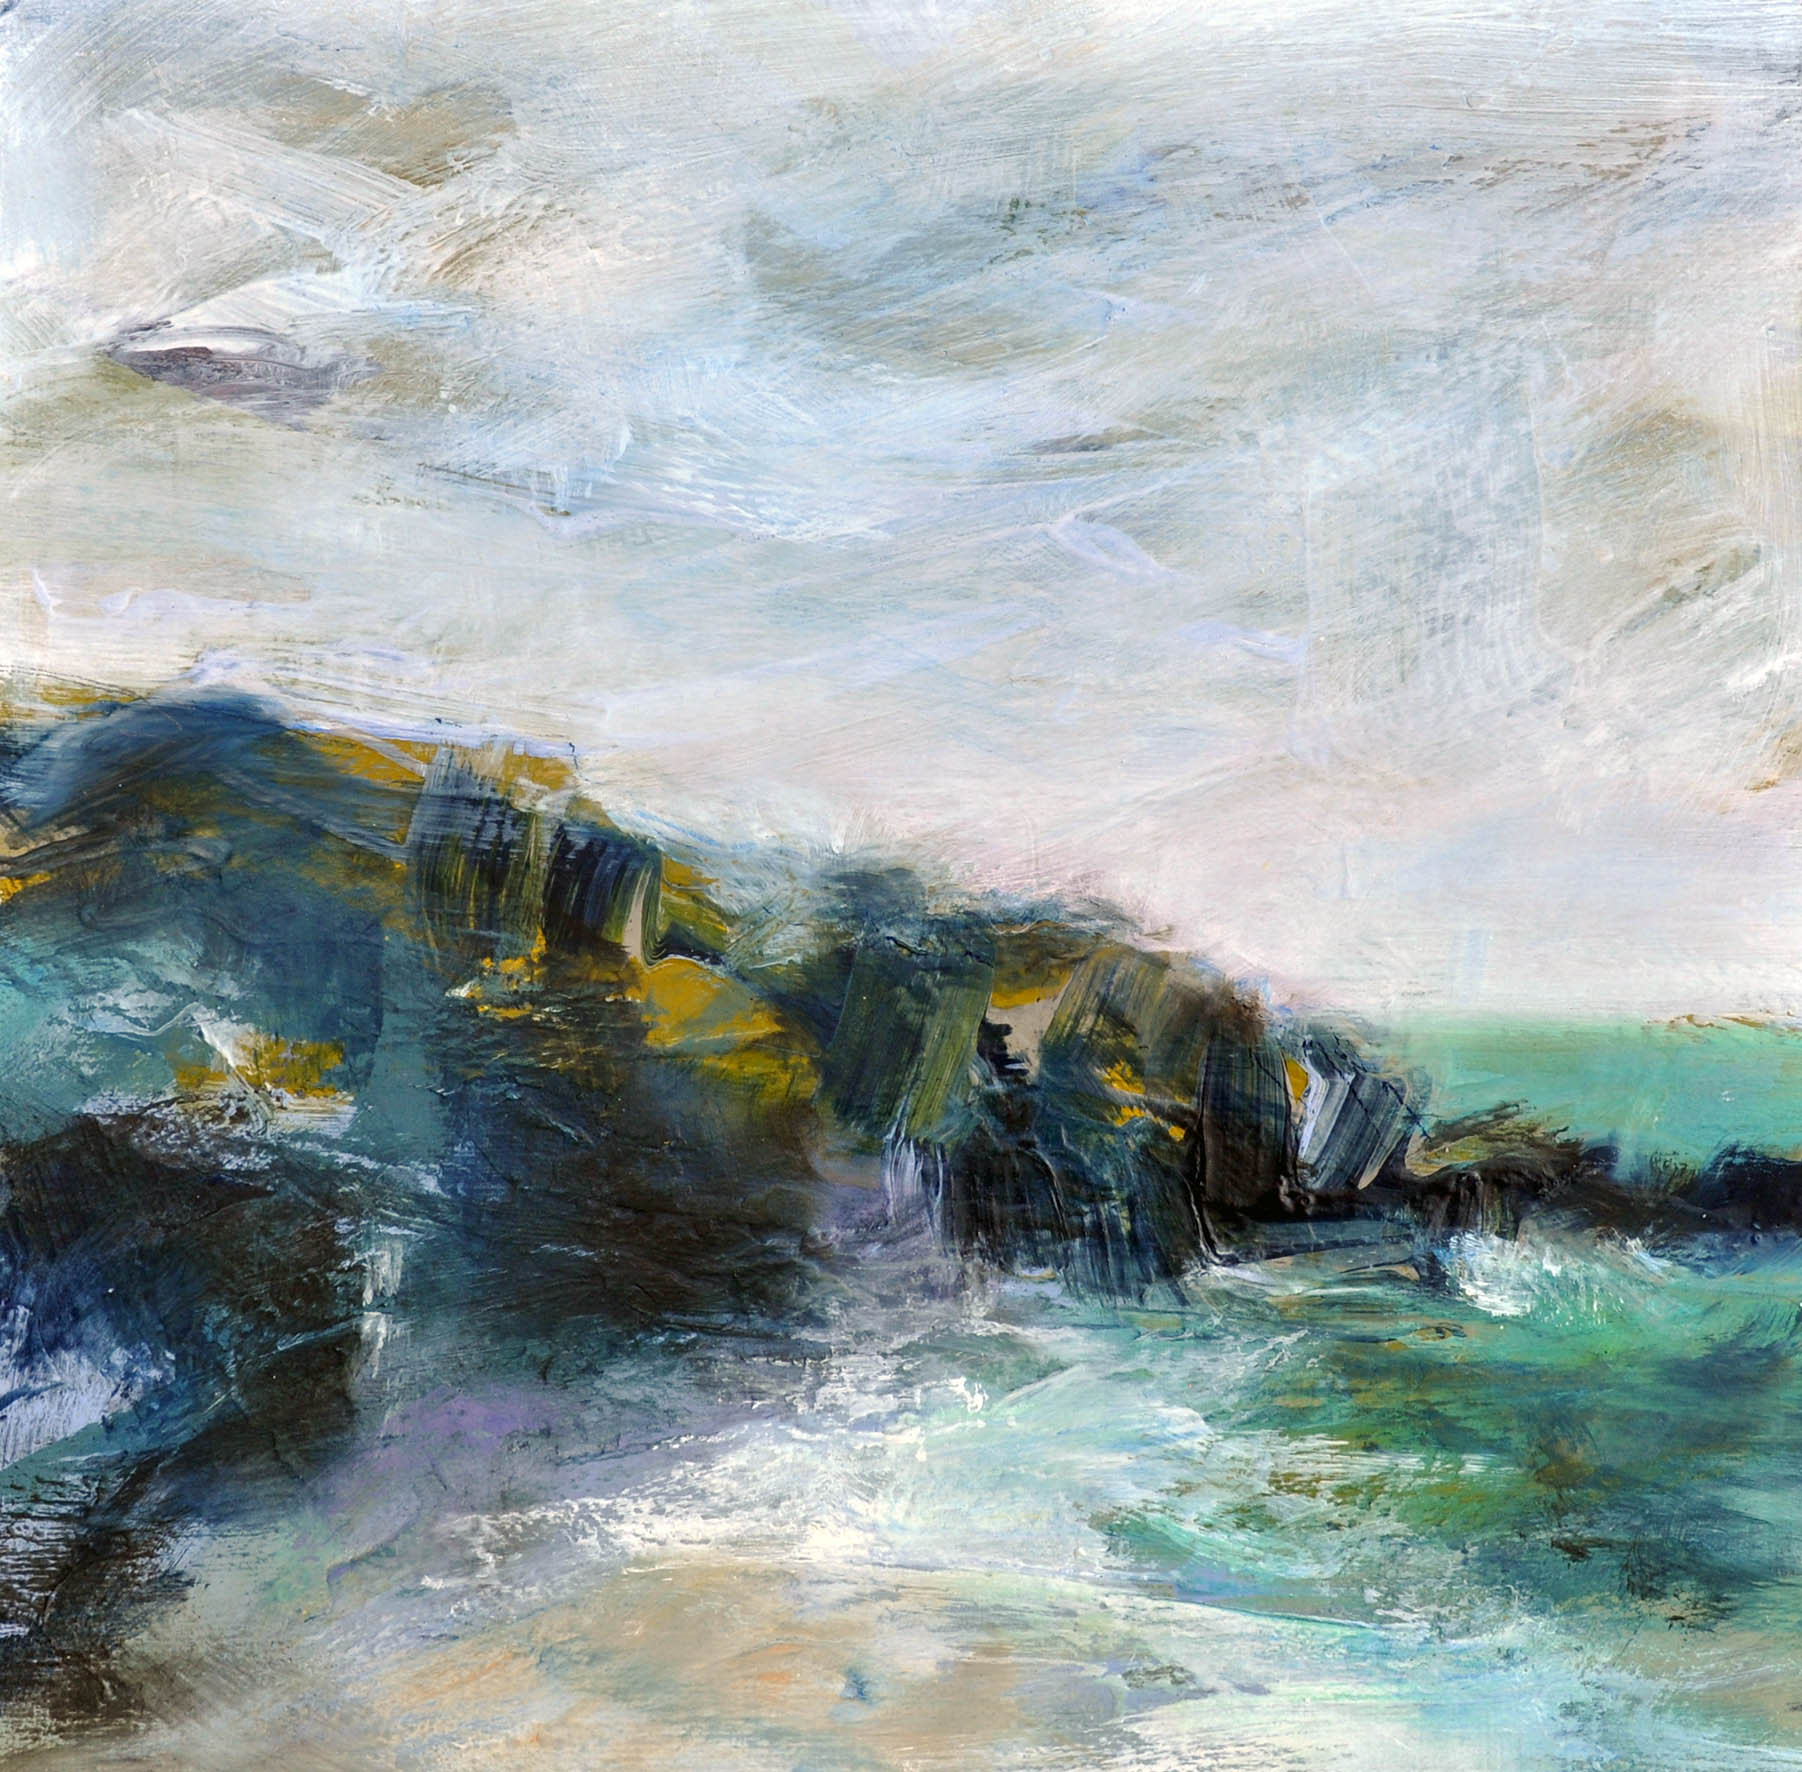 "<span class=""link fancybox-details-link""><a href=""/artists/90-freya-horsley/works/7037-freya-horsley-our-cove-2020/"">View Detail Page</a></span><div class=""artist""><strong>Freya Horsley</strong></div> <div class=""title""><em>Our Cove</em>, 2020 </div> <div class=""medium"">mixed media on board</div> <div class=""dimensions"">h. 40 x w. 40 cm </div><div class=""copyright_line"">Ownart: £65 x 10 Months, 0% APR</div>"